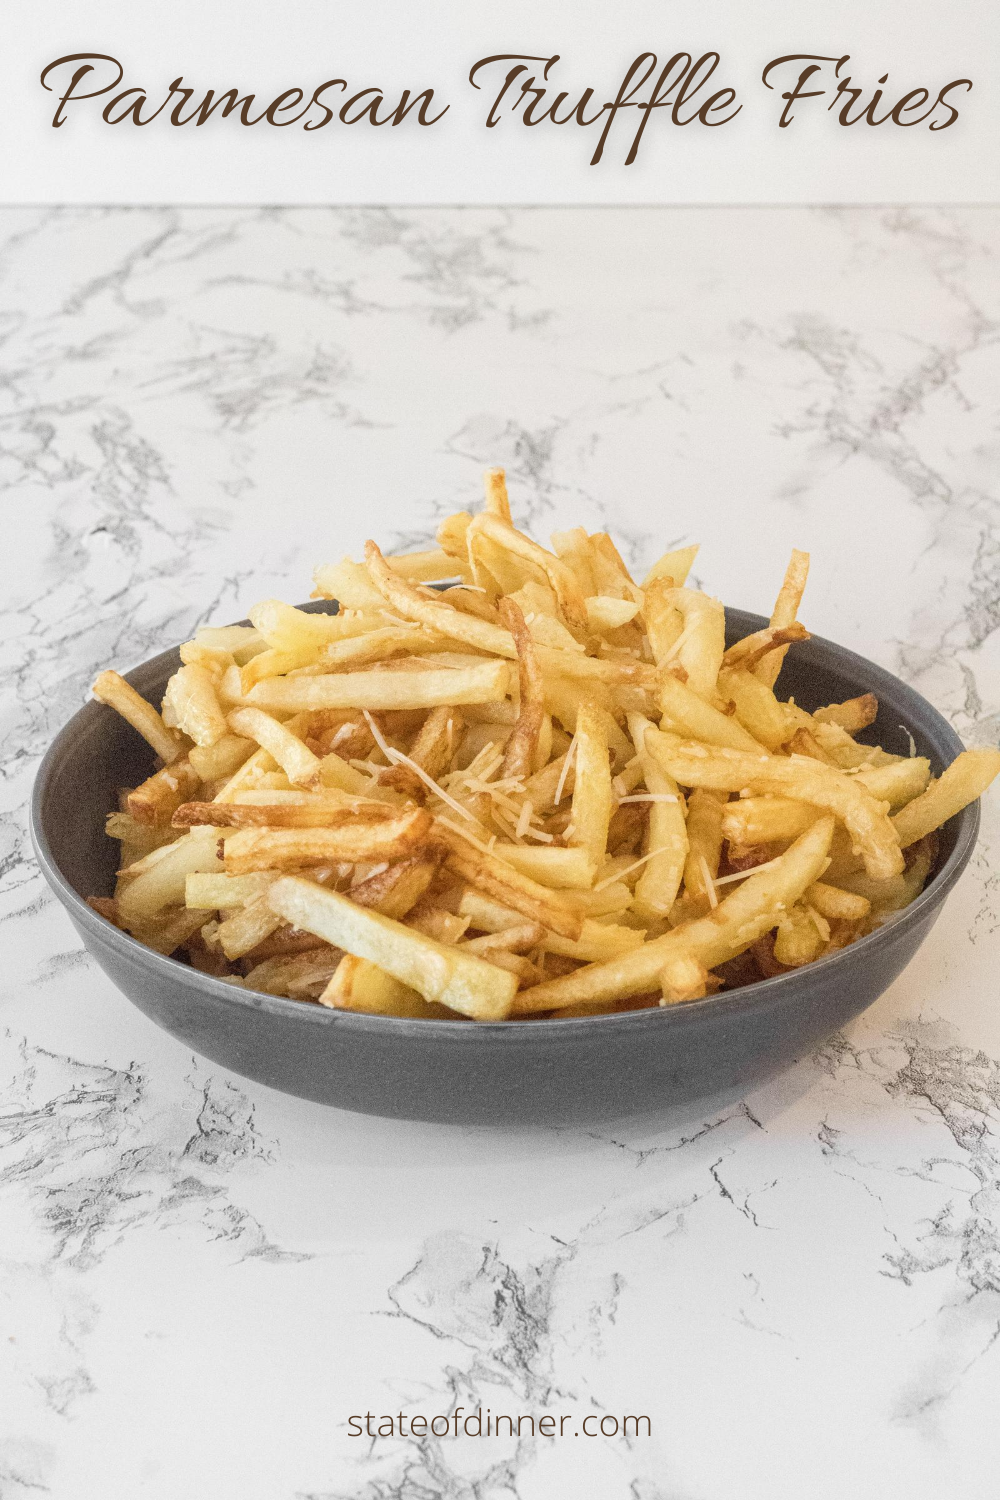 Parmesan Truffle Fries Recipe Crispy Soft Fries State Of Dinner Recipe Interesting Food Recipes Side Dishes Easy Recipes